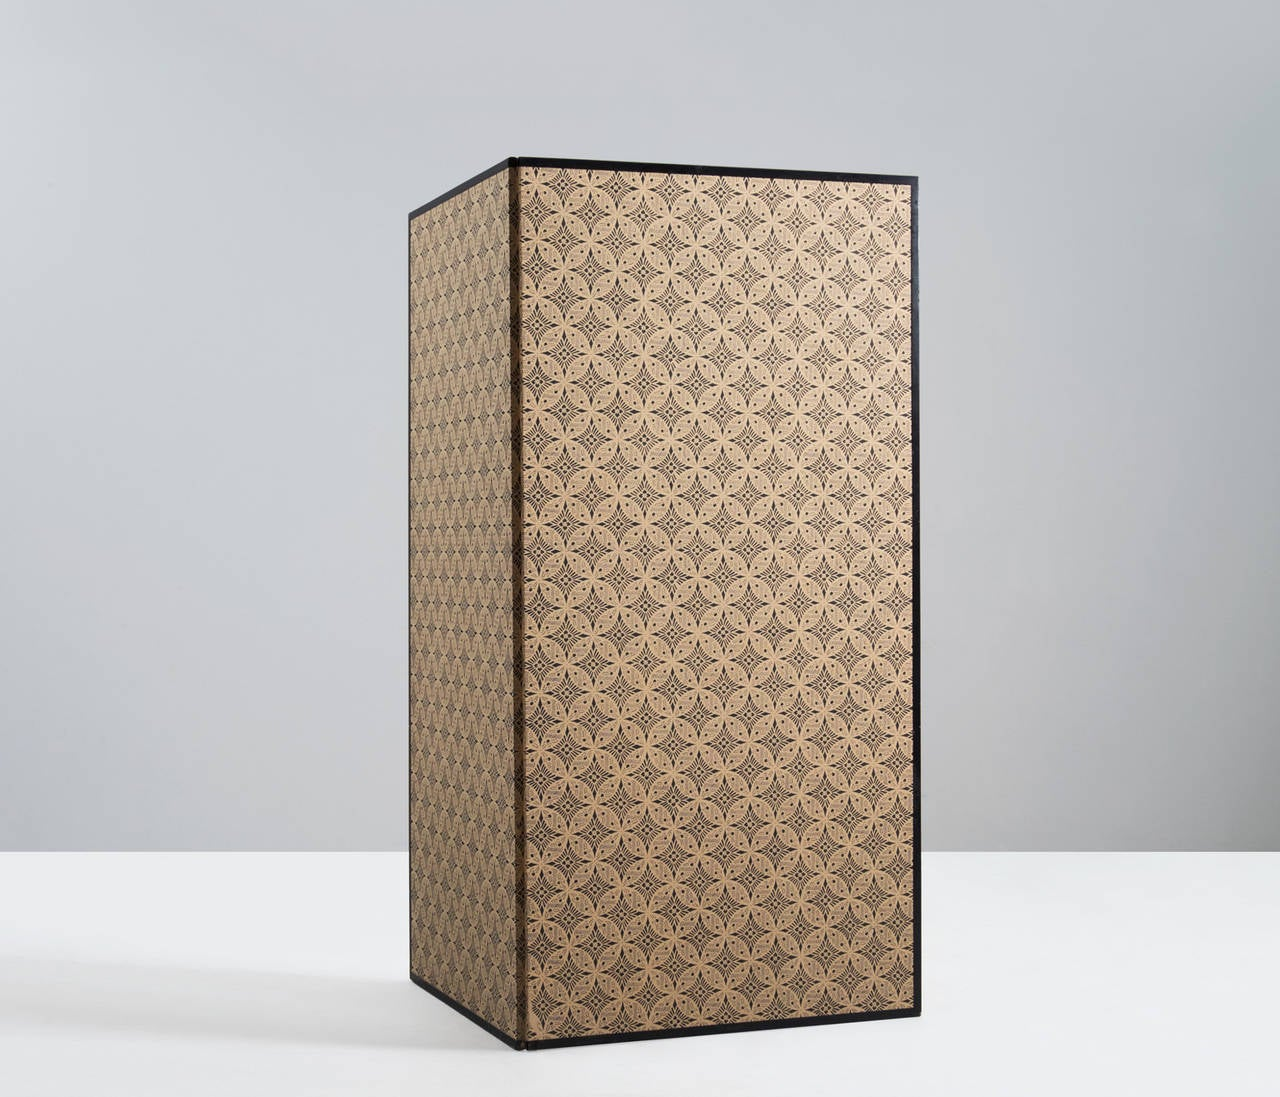 Gold Leaf Room Divider Screen For Sale at 1stdibs